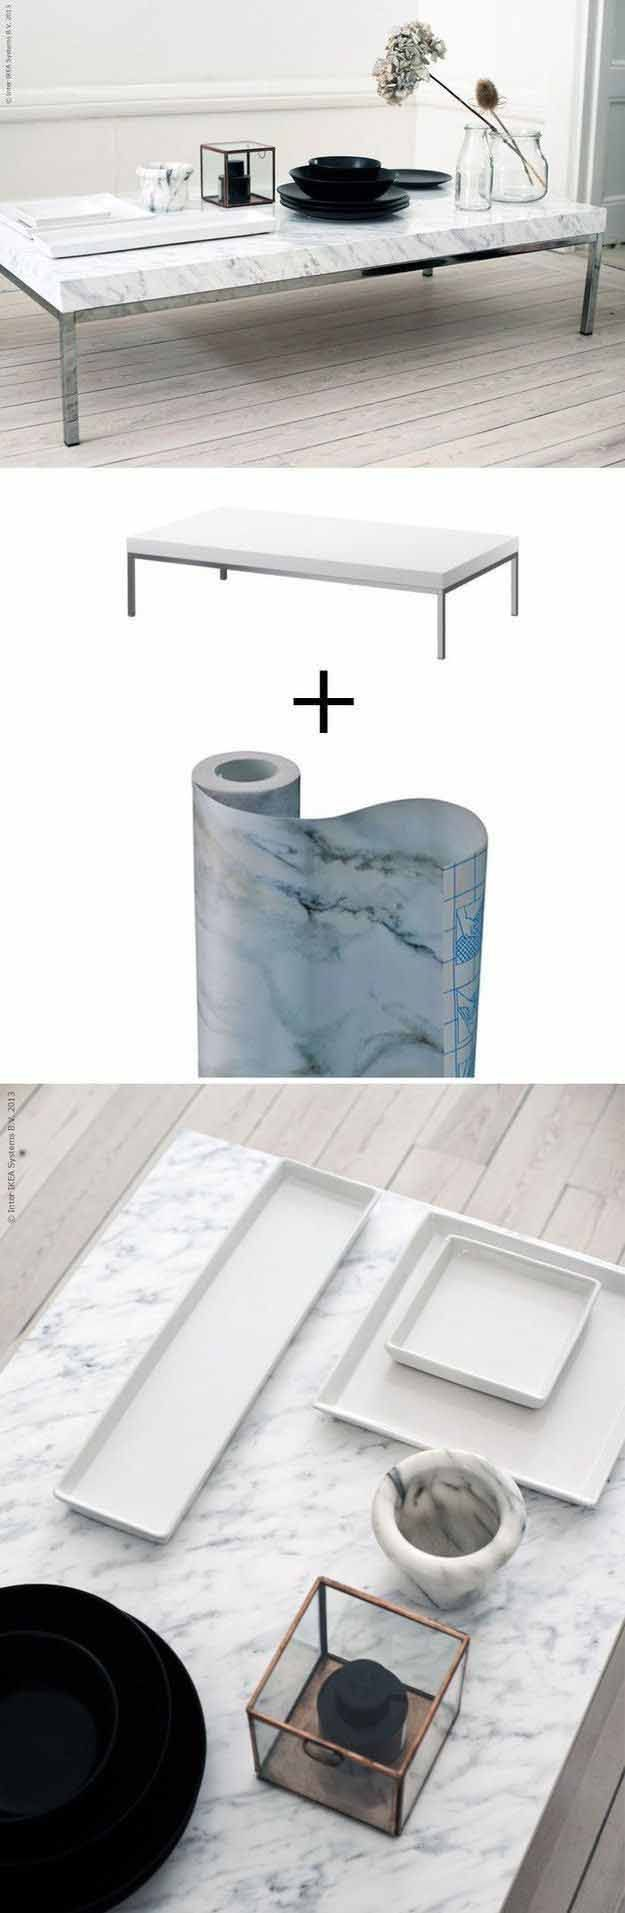 DIY Home Decor On a Budget | Easy Furniture Projects | Faux Marble DIY Coffee Table | DIY Projects and Crafts by DIY JOY at http://diyjoy.com/diy-home-decor-coffee-table-ideas